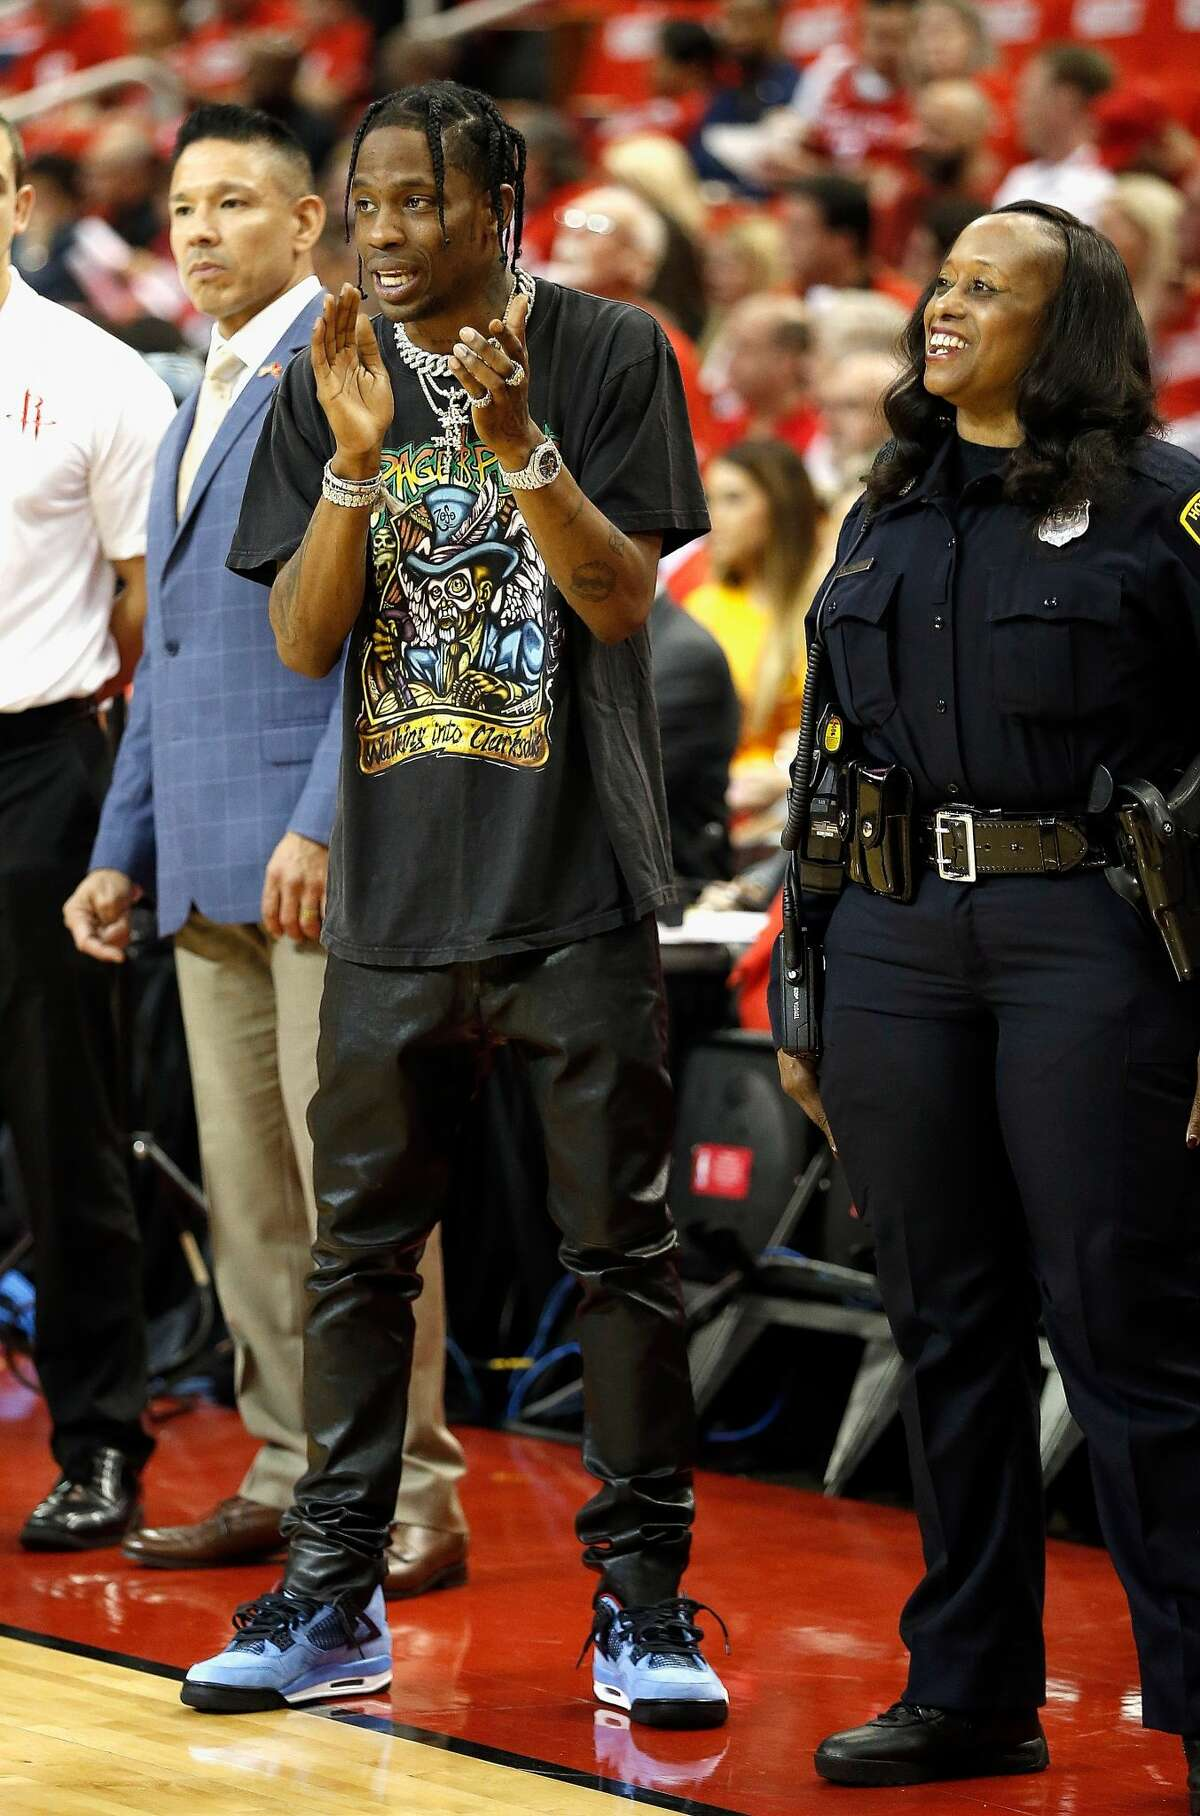 Houston rapper Travis Scott looks on during Game Two of the first round of the Western Conference playoffs at Toyota Center.